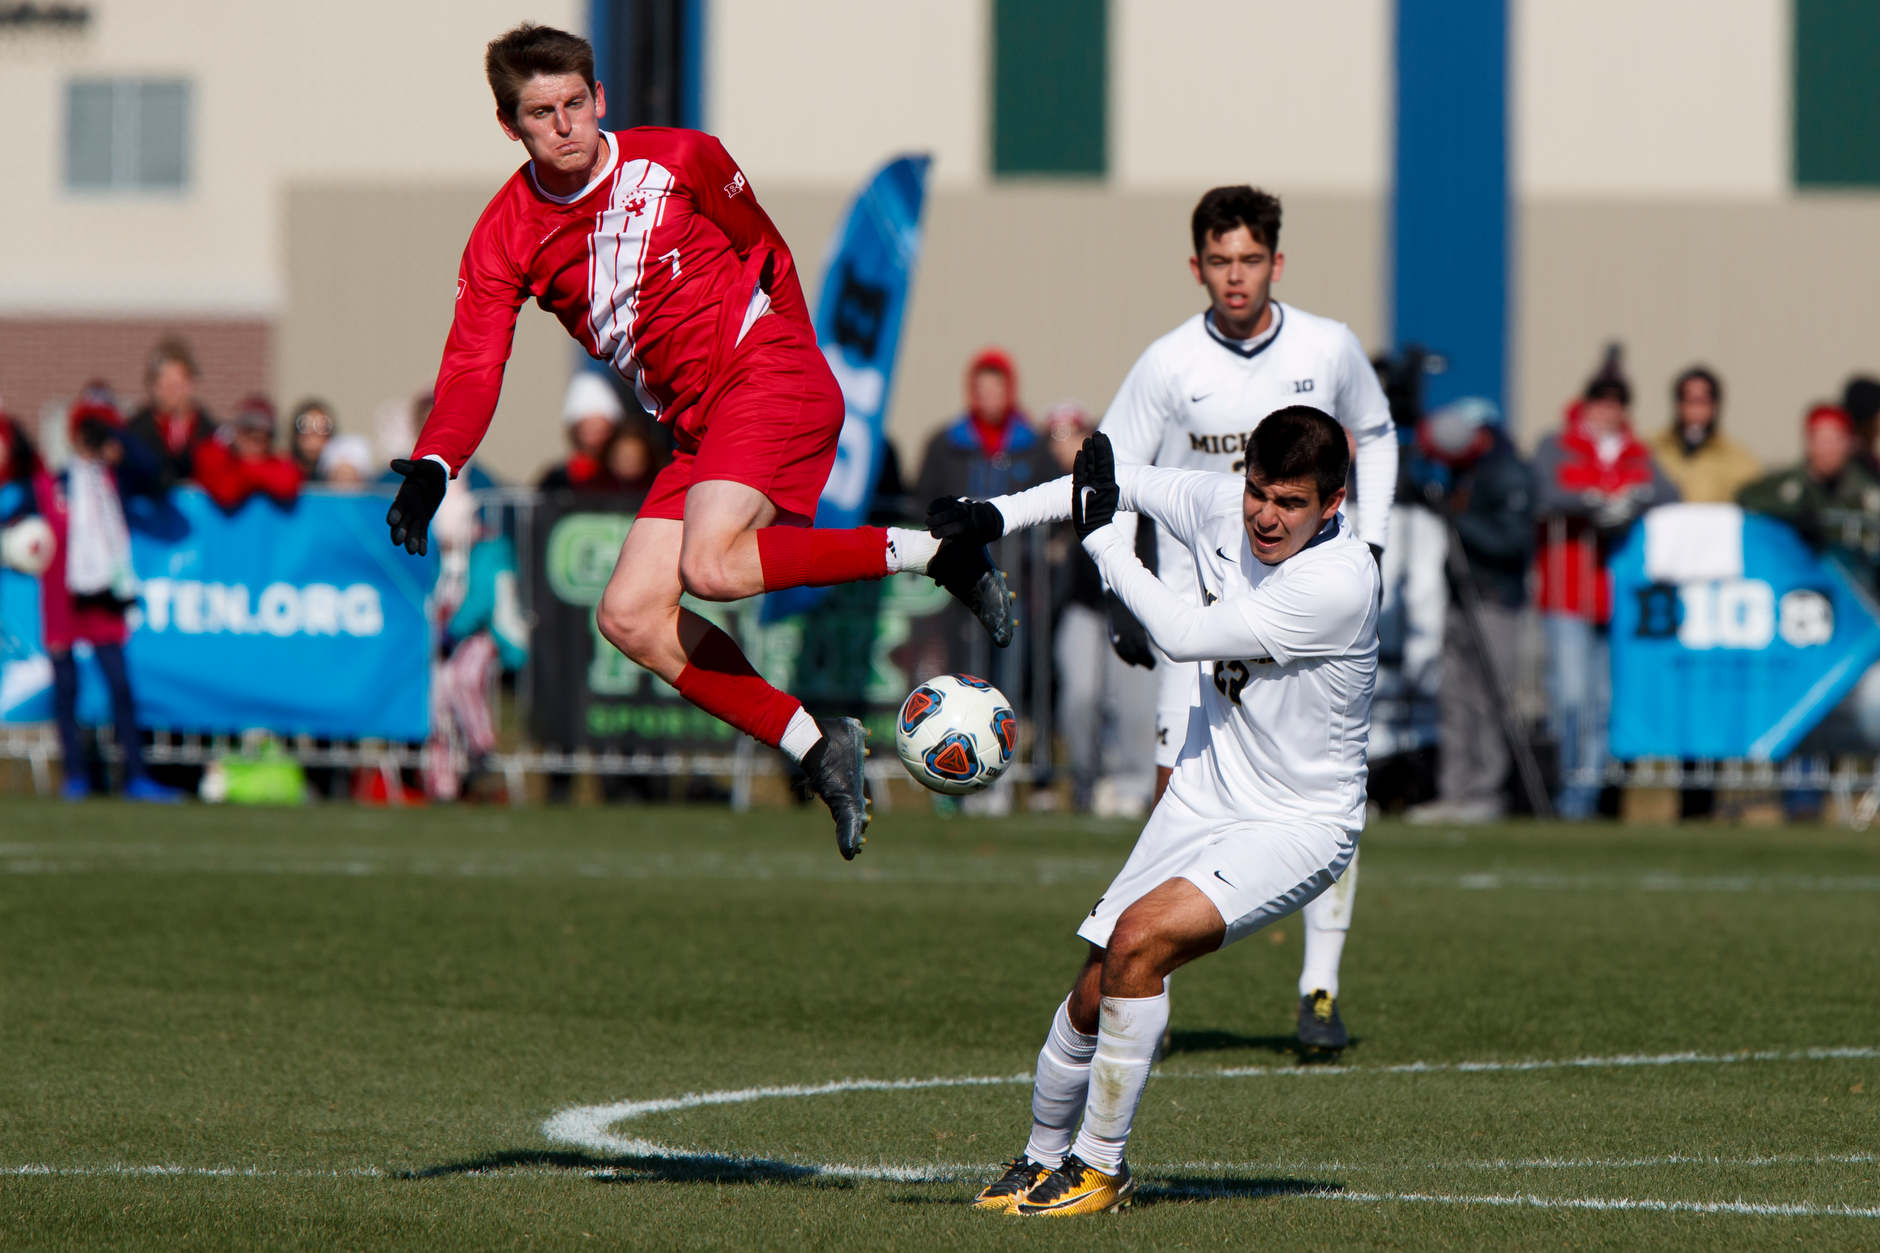 Michigan's Marc Ybarra (23) tries to avoid contact from Indiana's Trevor Swartz (7) during the Big Ten Men's Soccer Tournament championship game at Grand Park in Westfield, Indiana on Sunday, Nov. 11, 2018. (Photo by James Brosher)